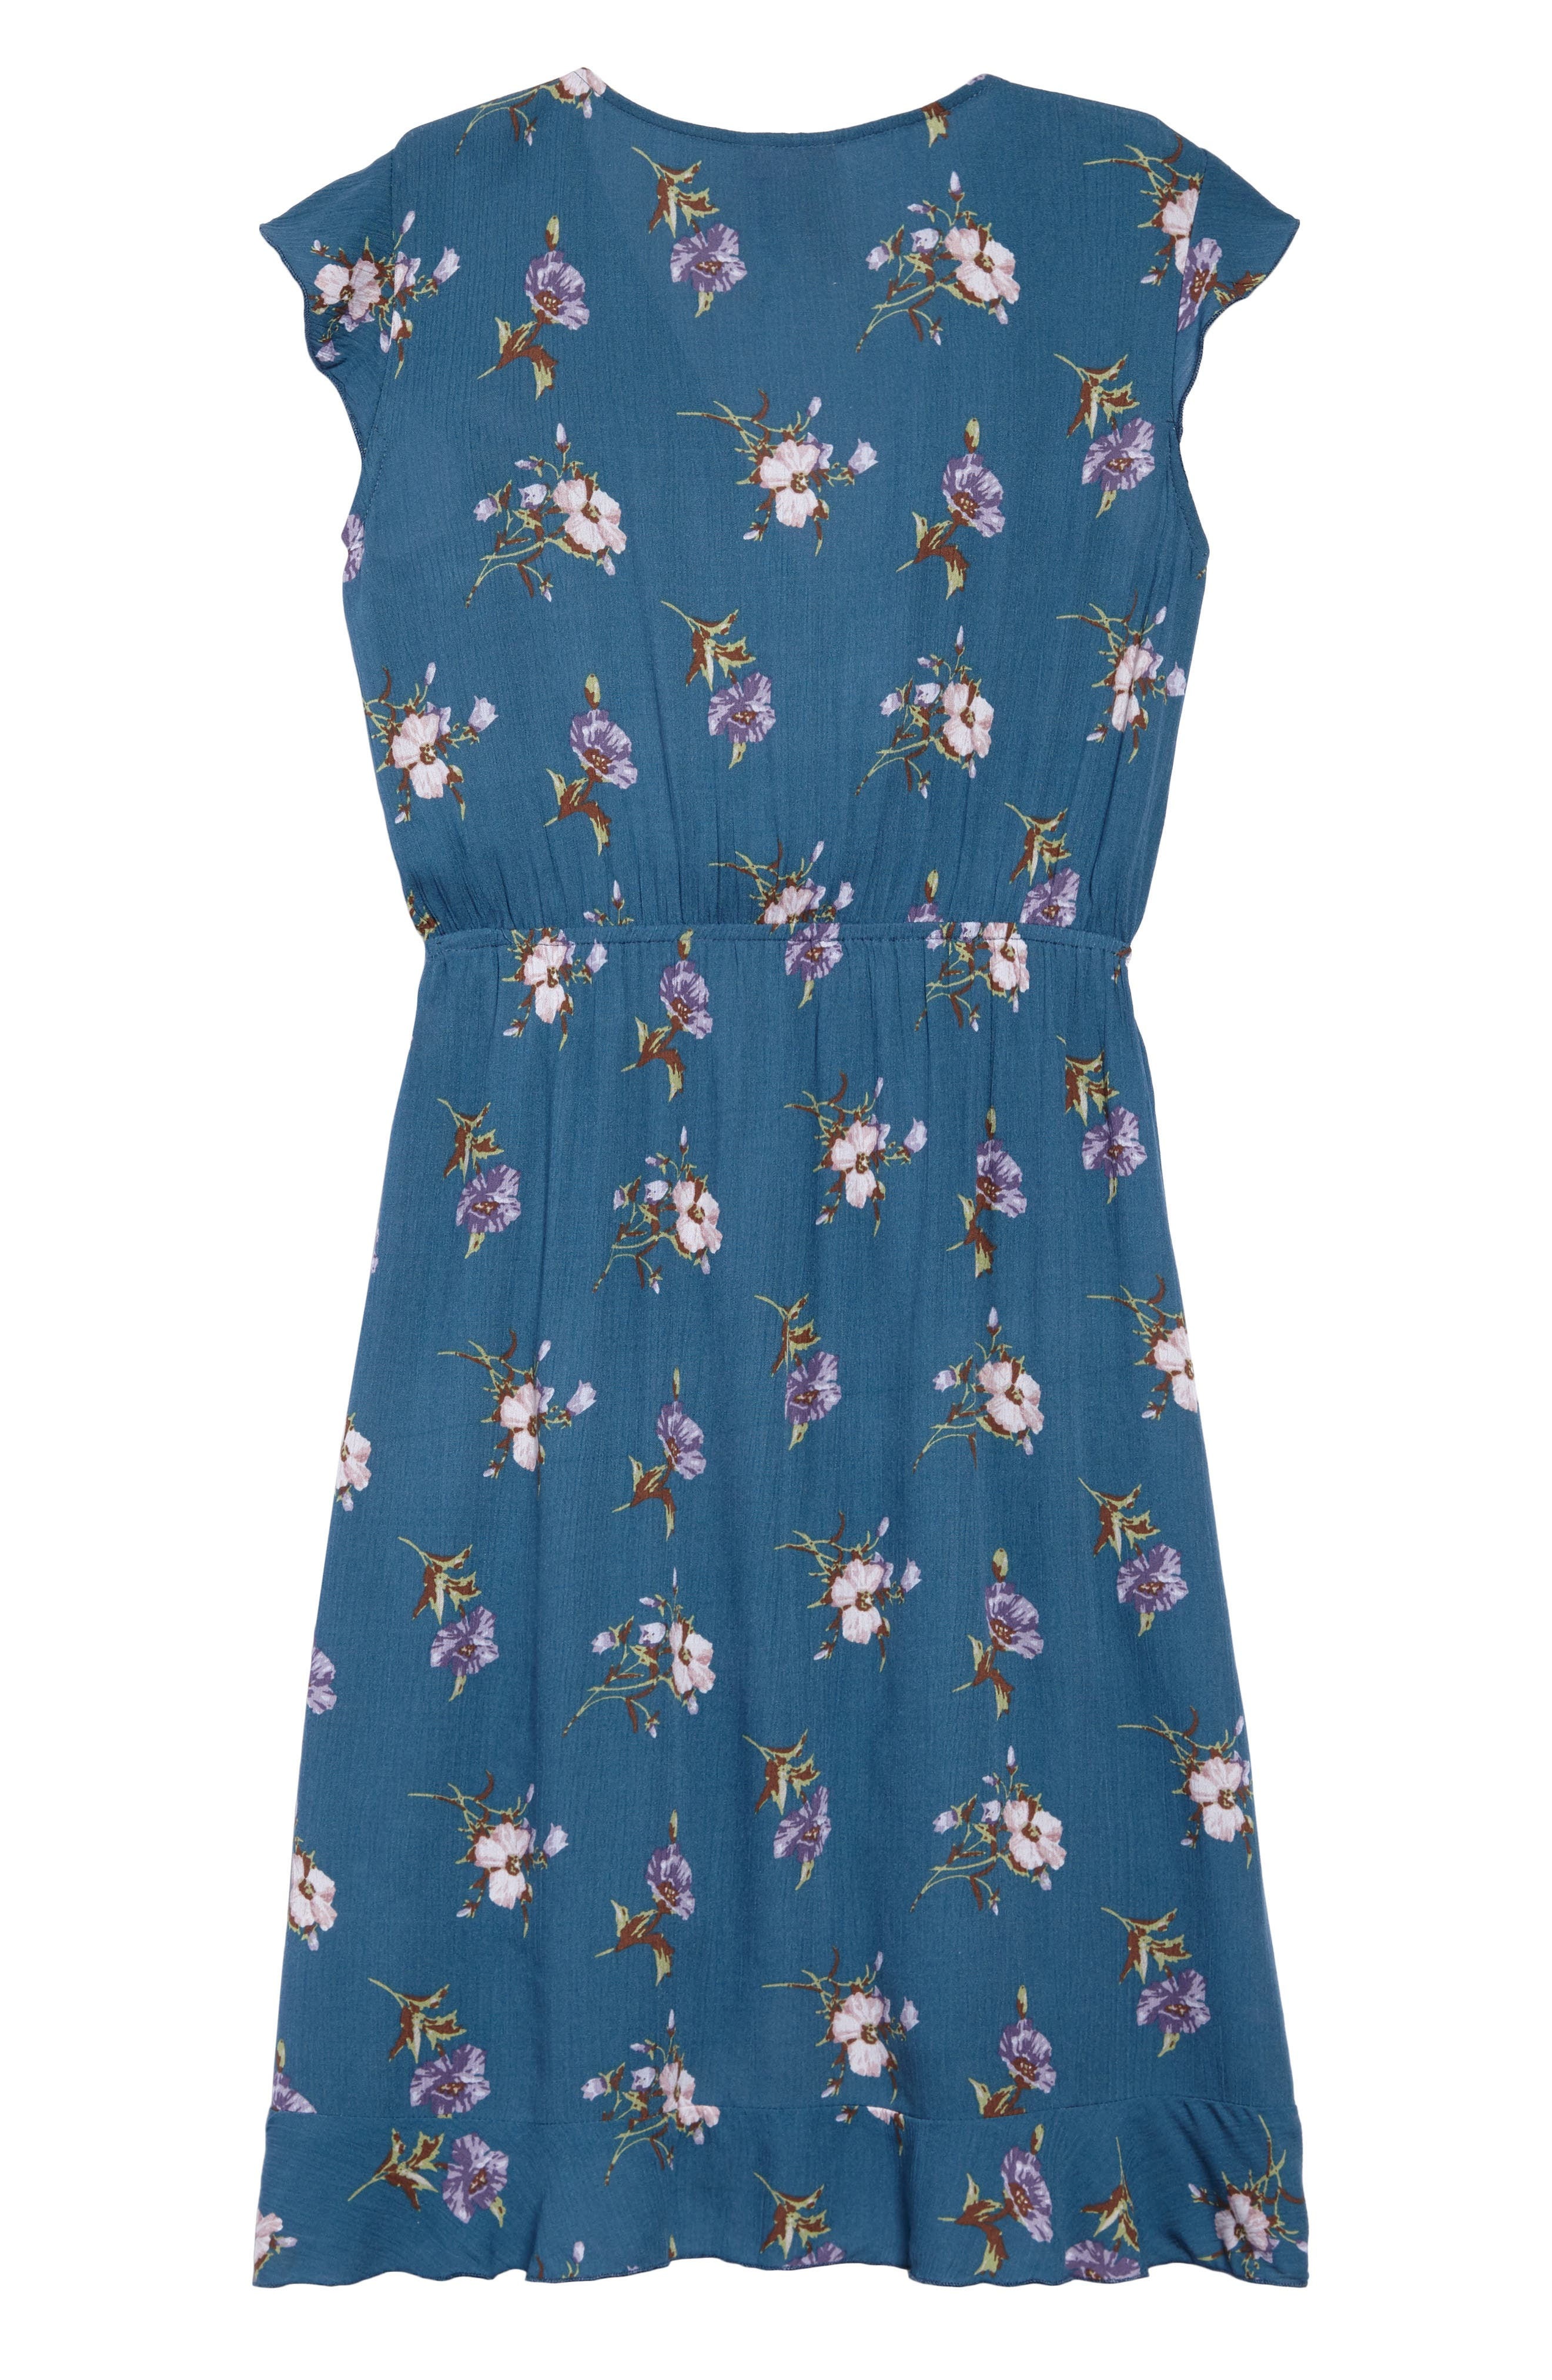 Floral Wrap Dress,                             Alternate thumbnail 2, color,                             474